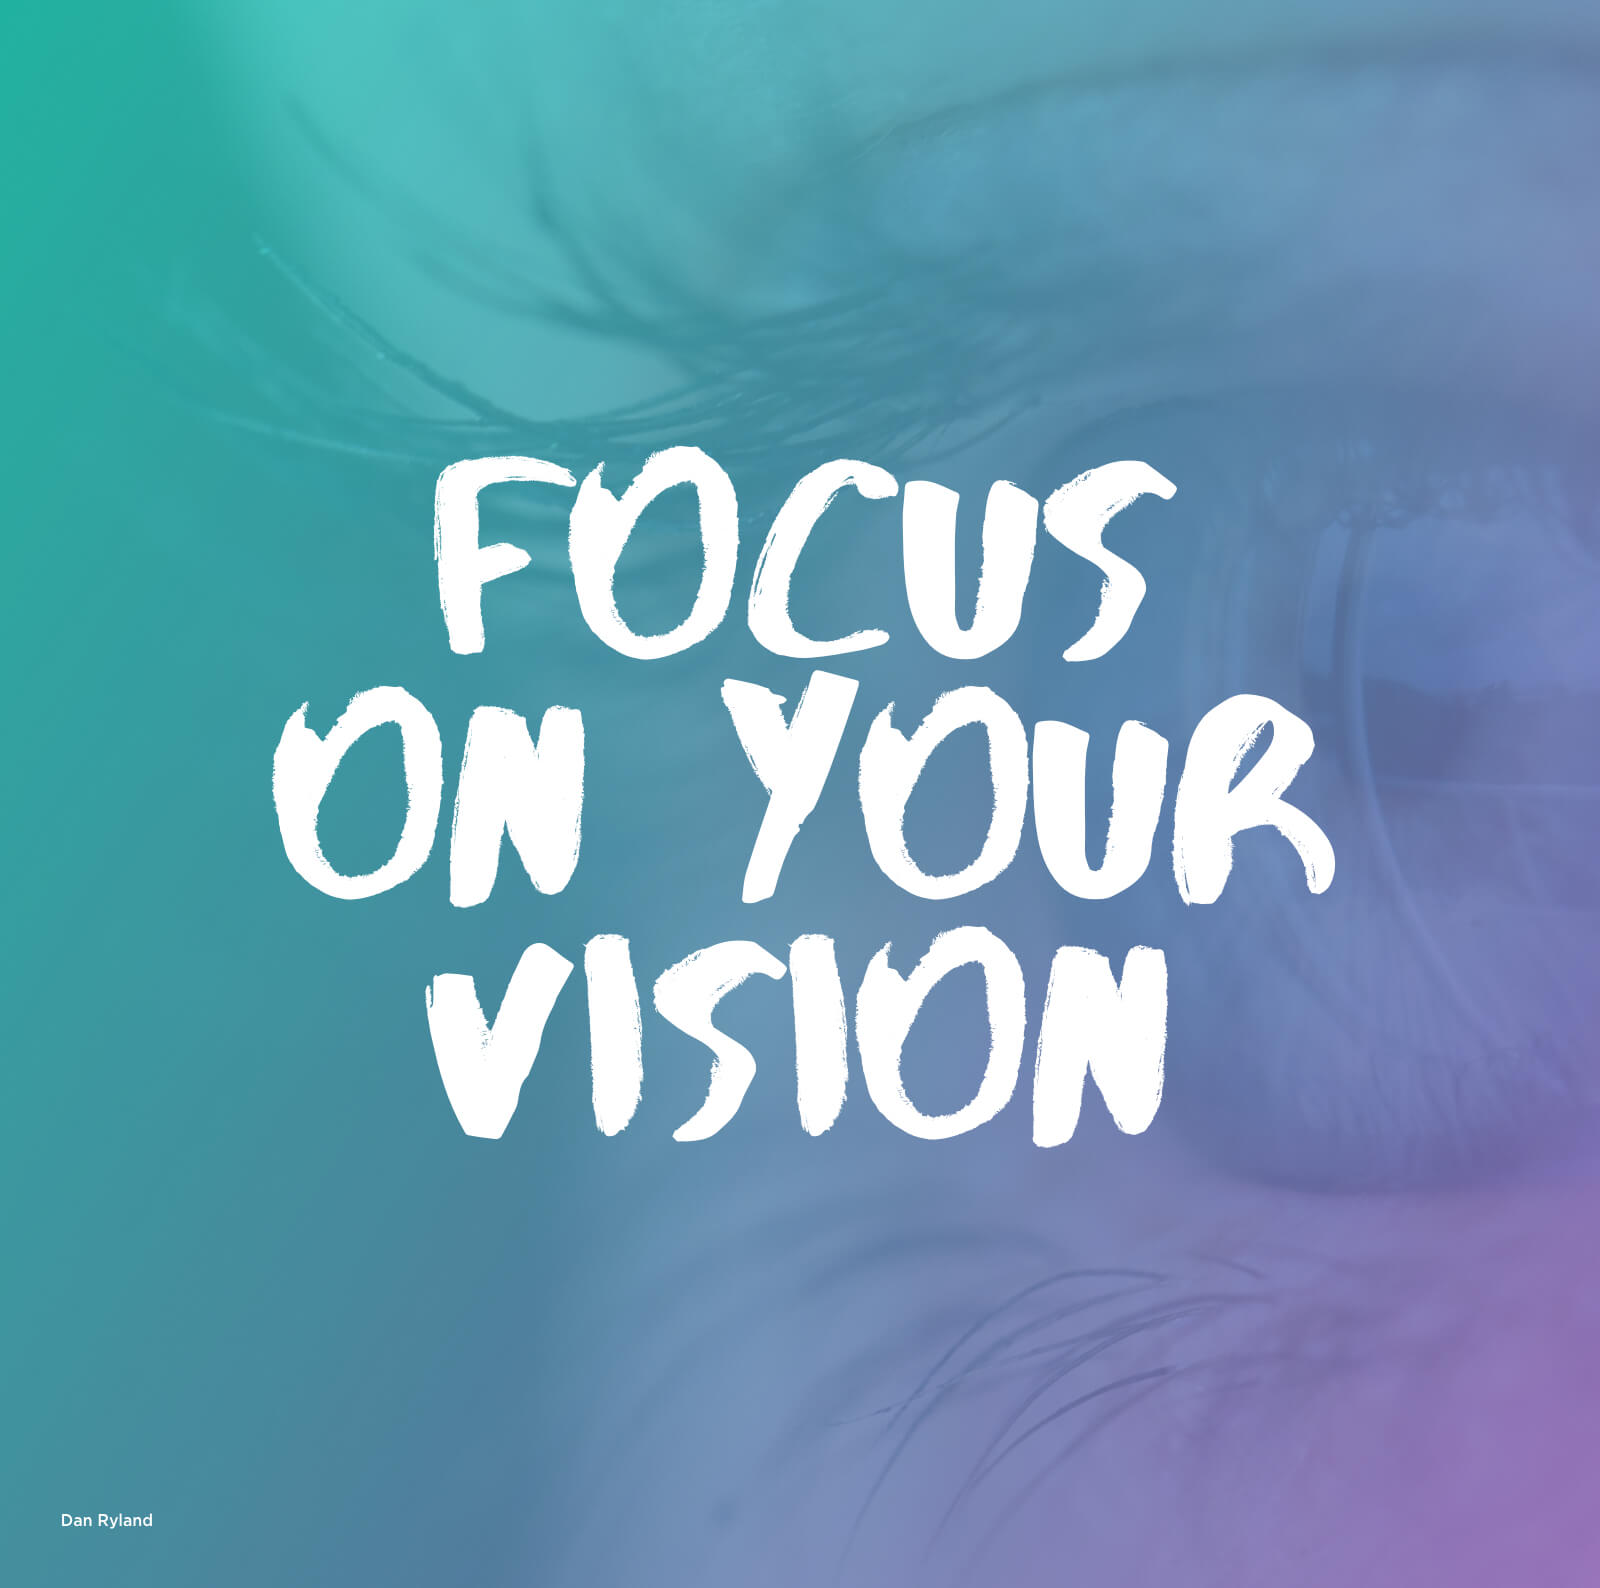 Focus on your vision